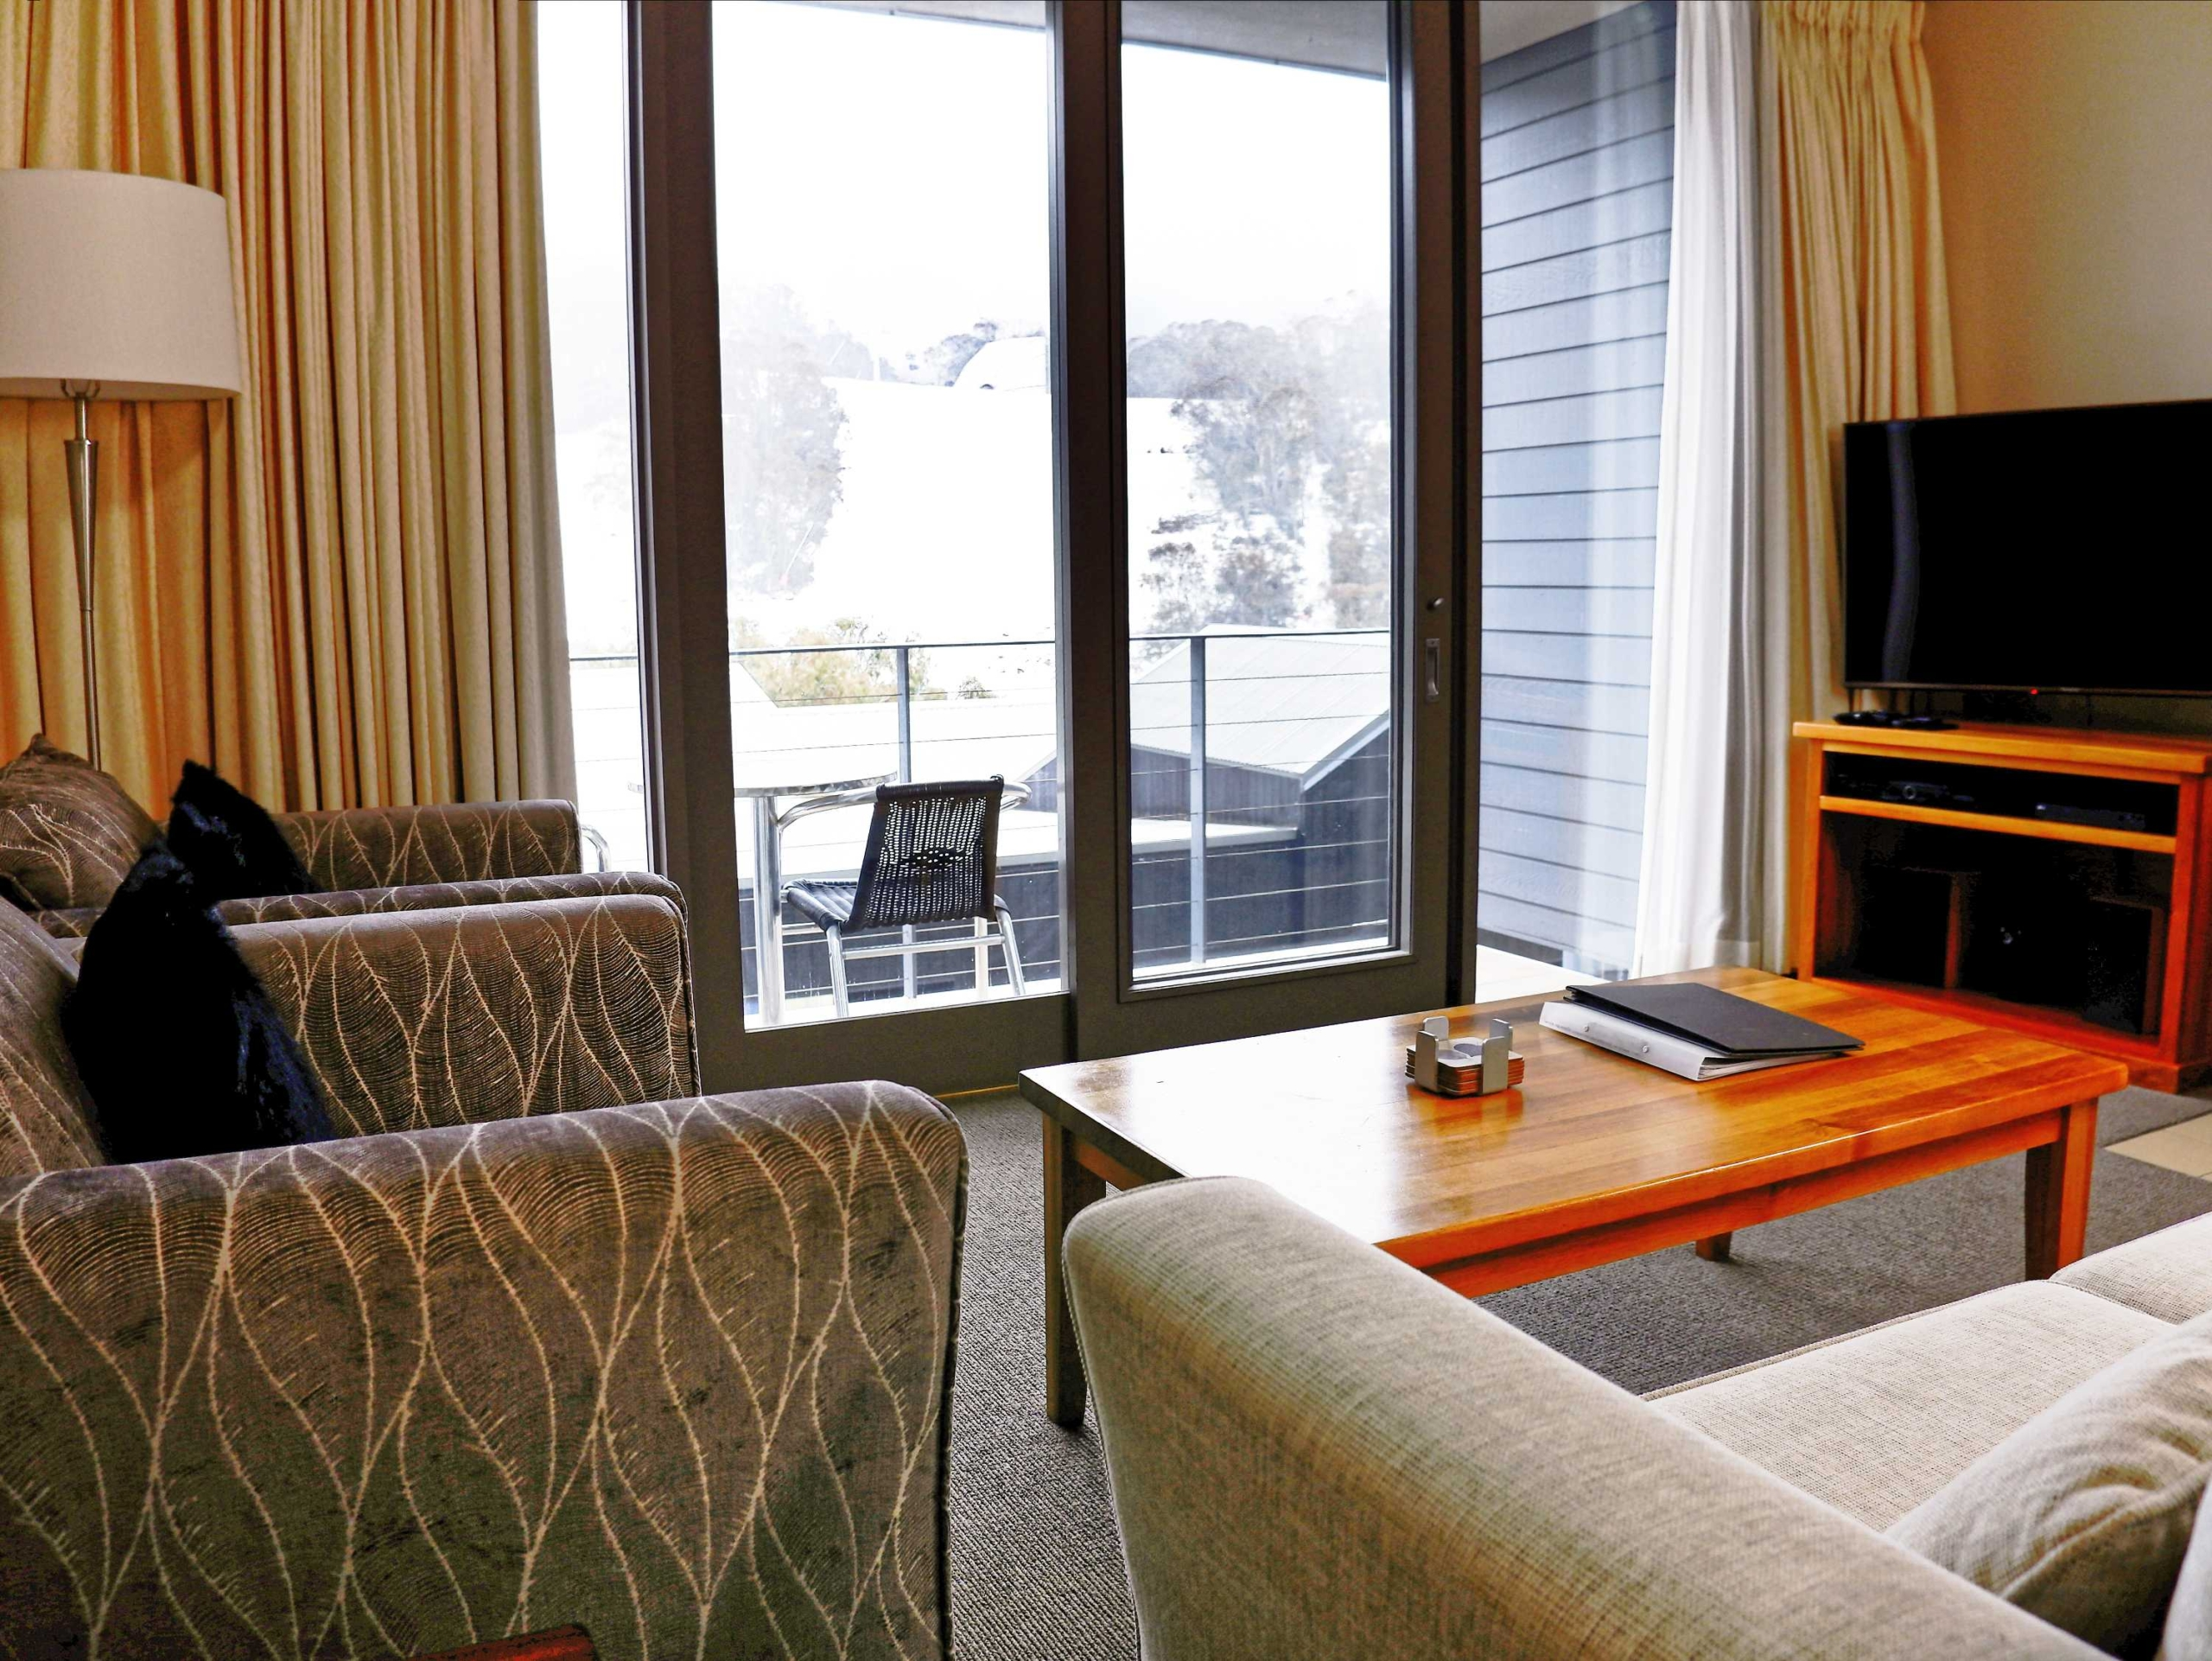 F3-Squatters-Run-Thredbo-Luxury-Apartments-1-Bed-Loft-Deluxe-Room-345-persons-see-squatters.com_.au_-scaled